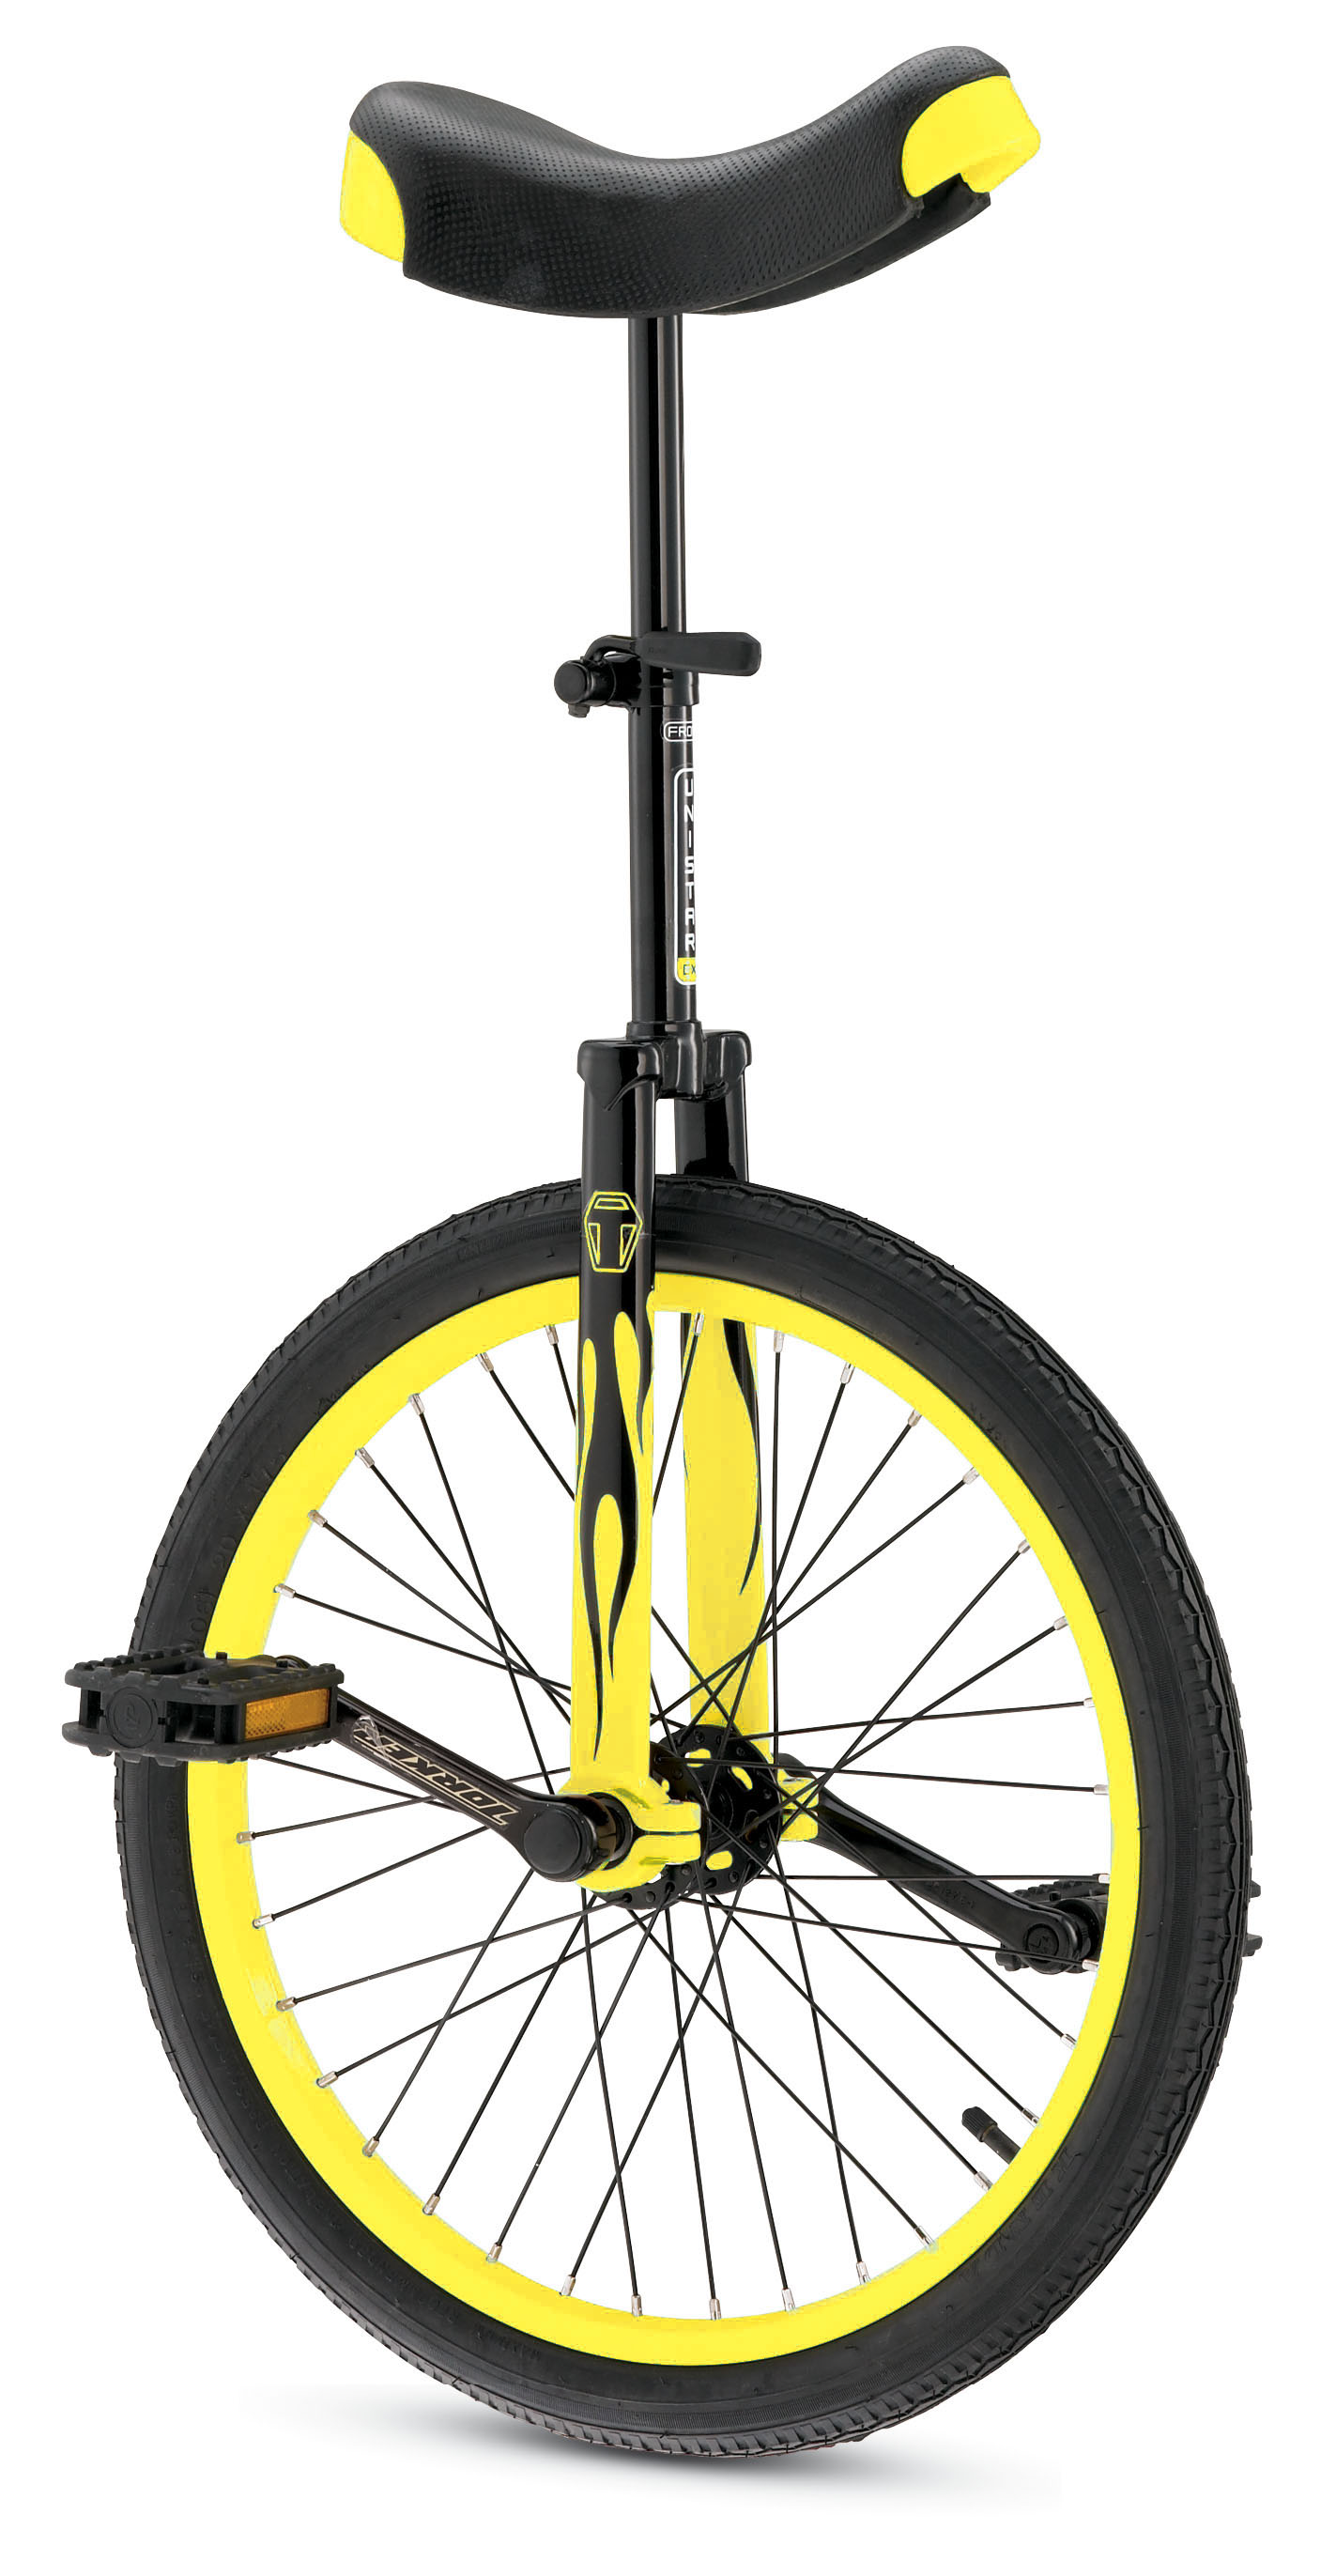 http://www.seriousjuggling.com/images/unicycles/torker-unistar-unicycle-cx-se-20-inch-yellow.jpg